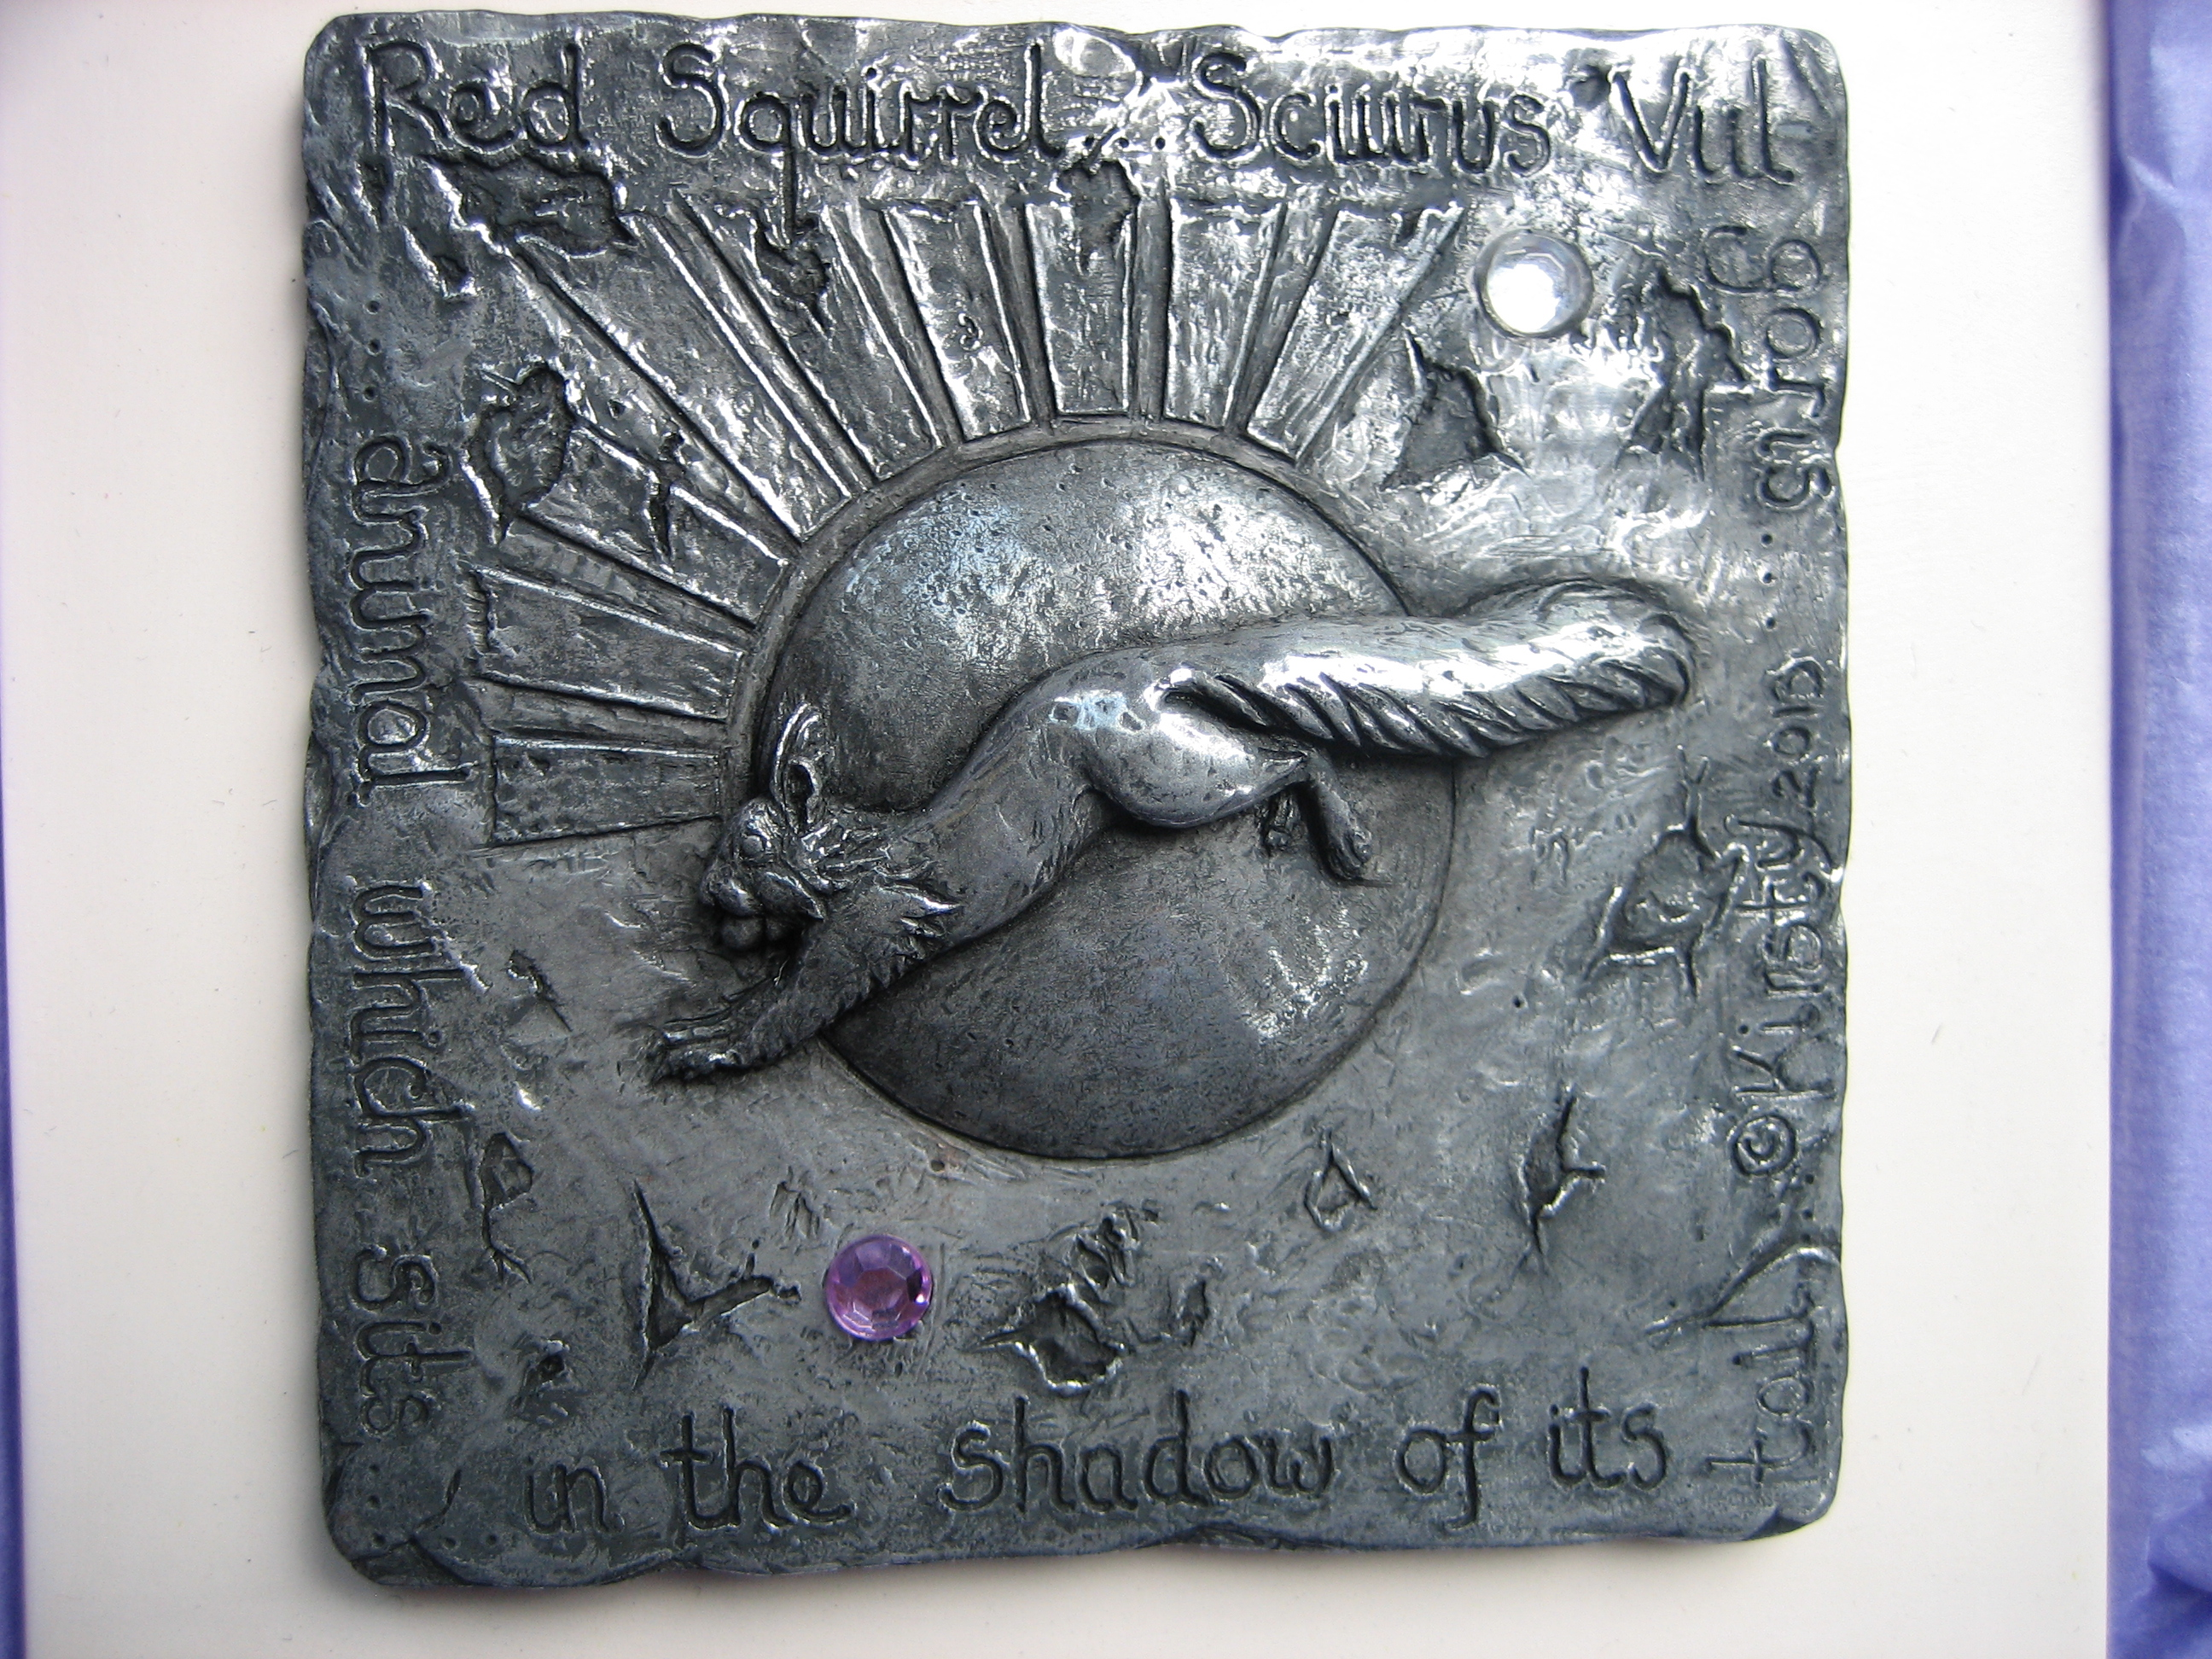 Red squirrel wall plaque in Cold-cast Pewter